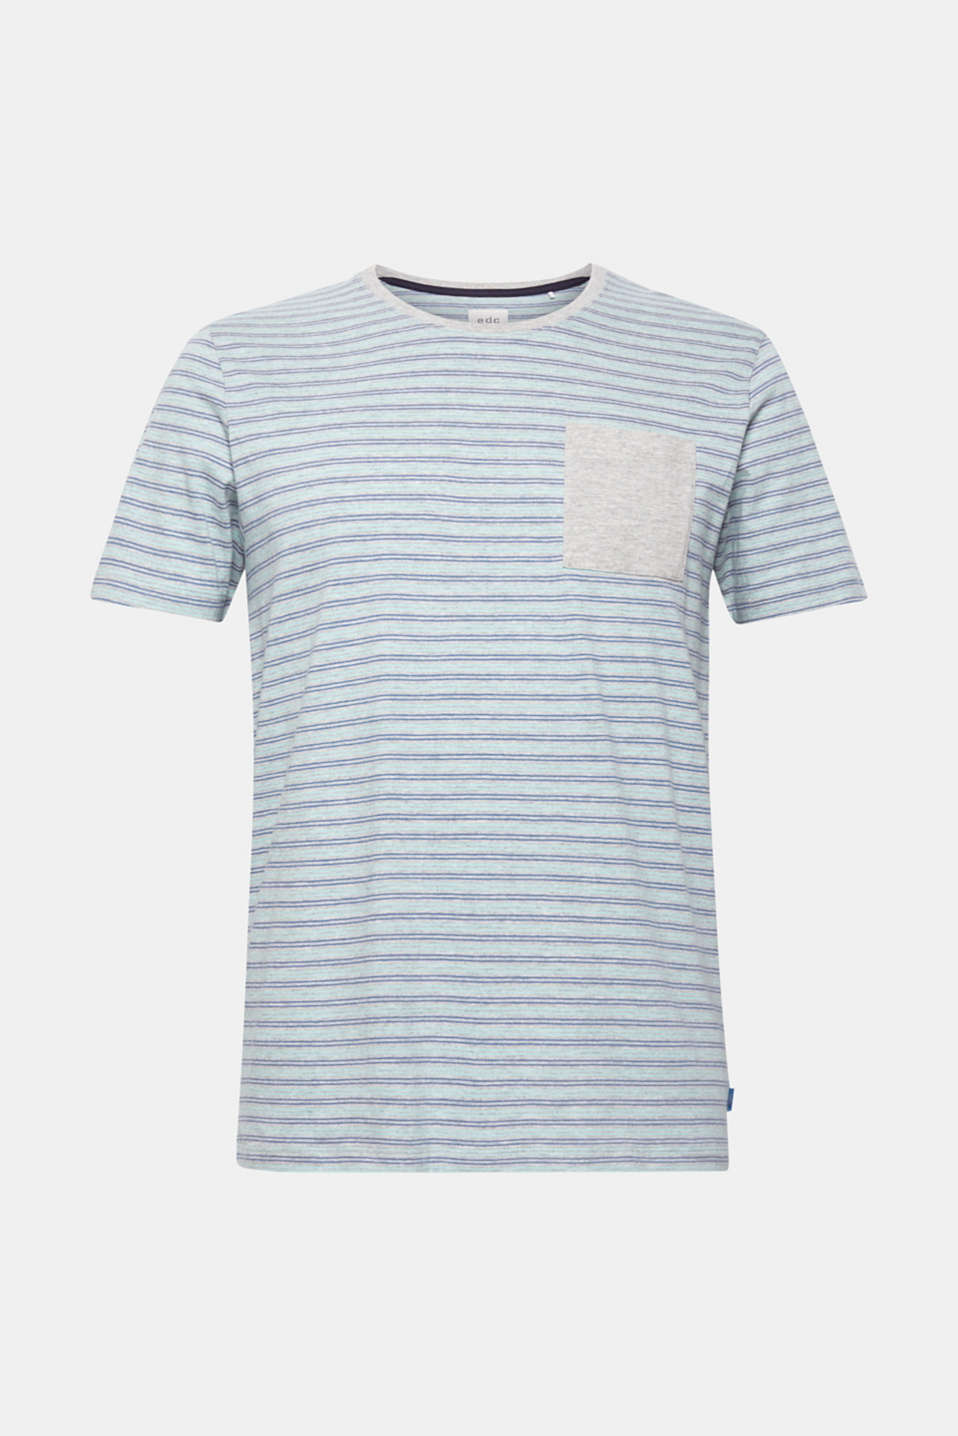 Striped jersey T-shirt, MEDIUM GREY, detail image number 5